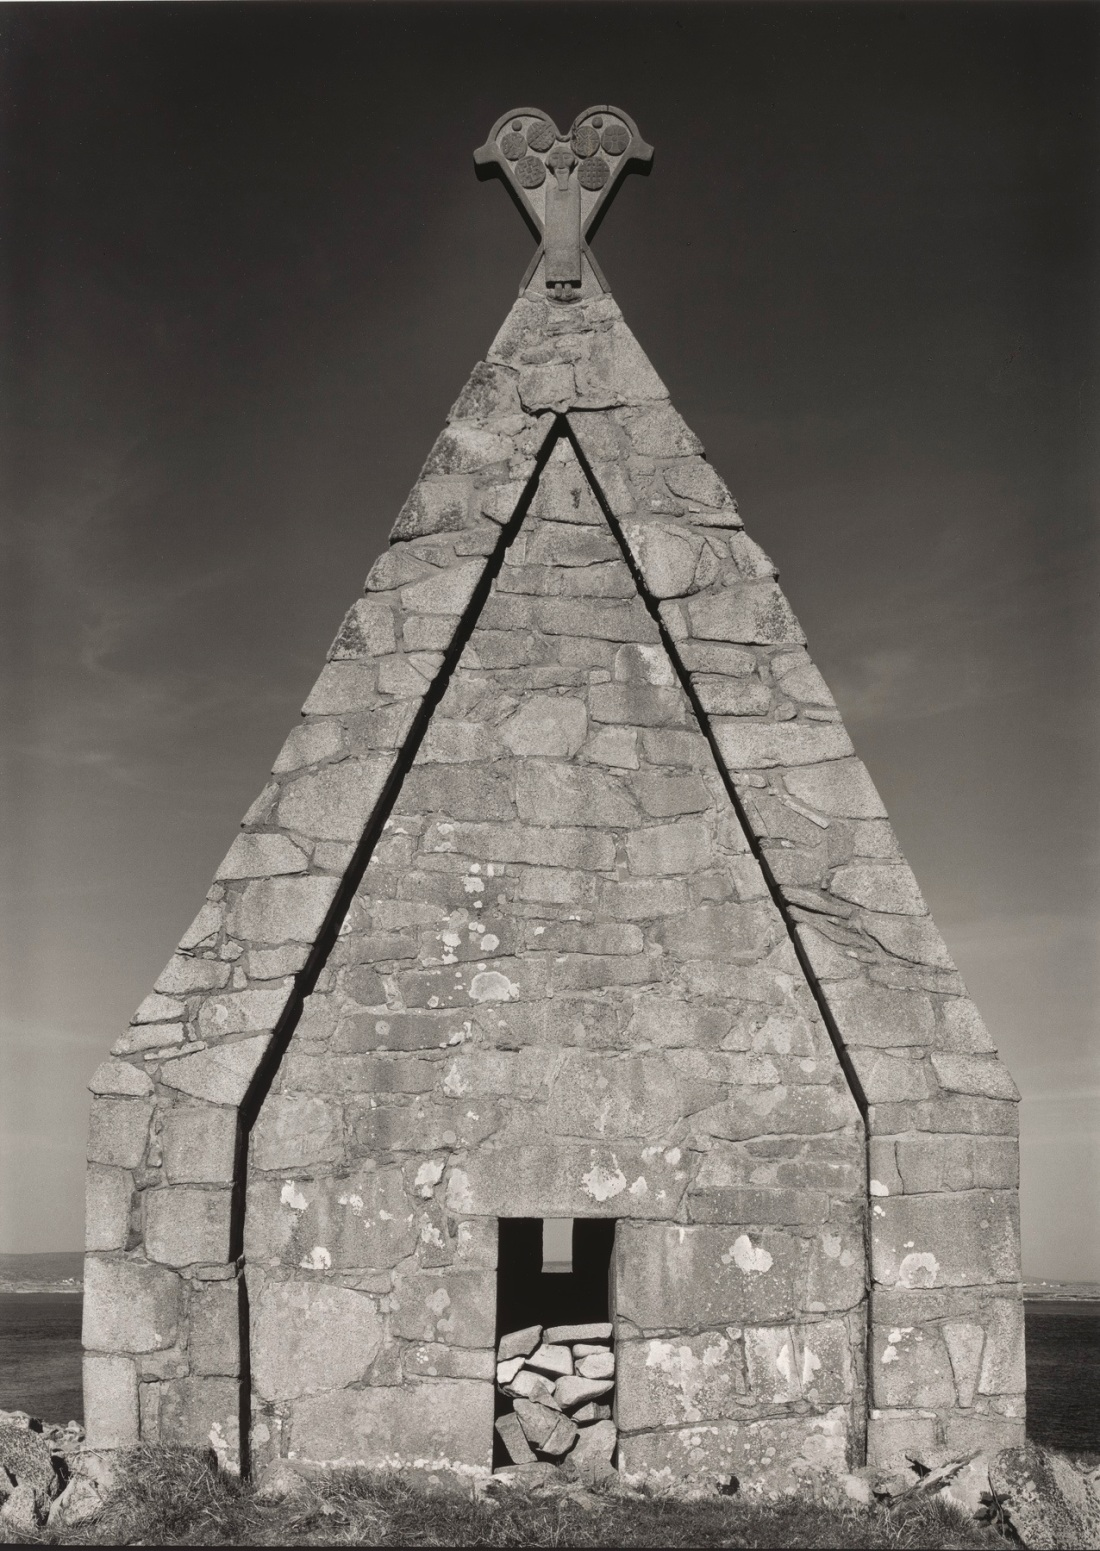 Paul Caponigro, Saint MacDara's Church, Ireland, 1987.